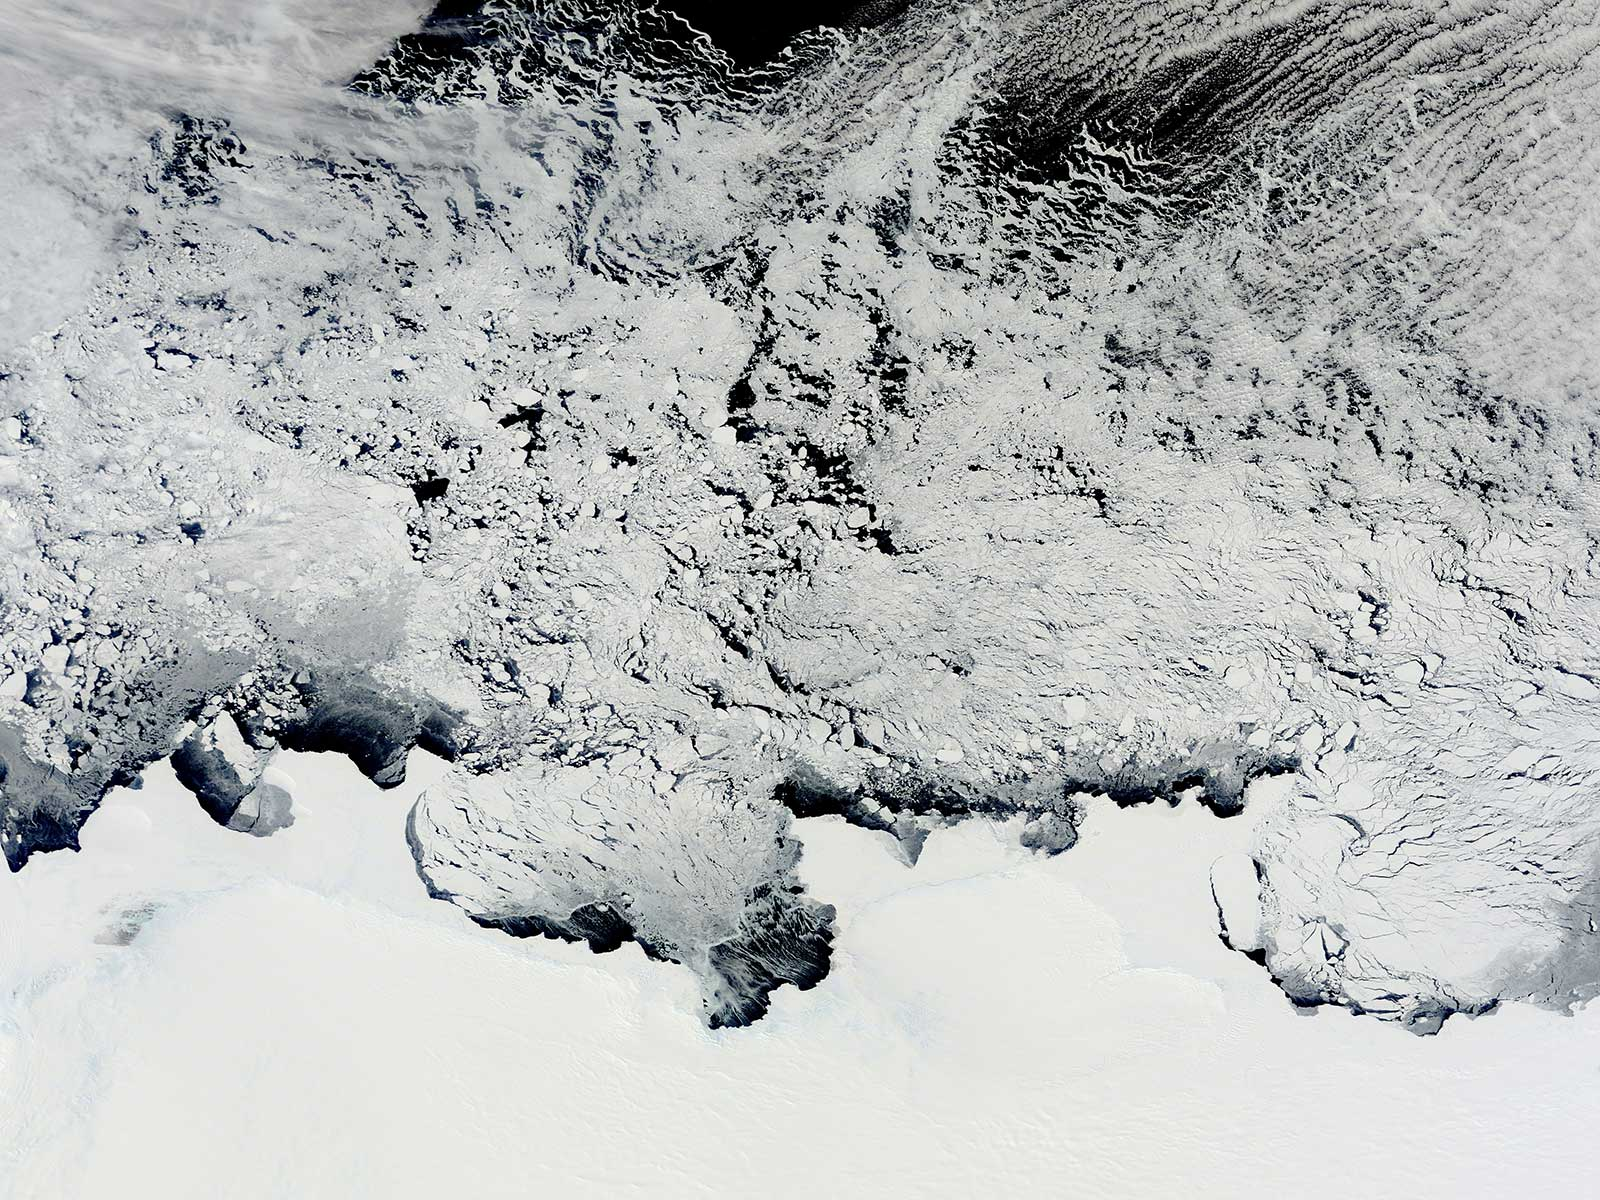 China's is operating at the highest point of the Antarctic ice sheet (Photo: NASA/Flickr)